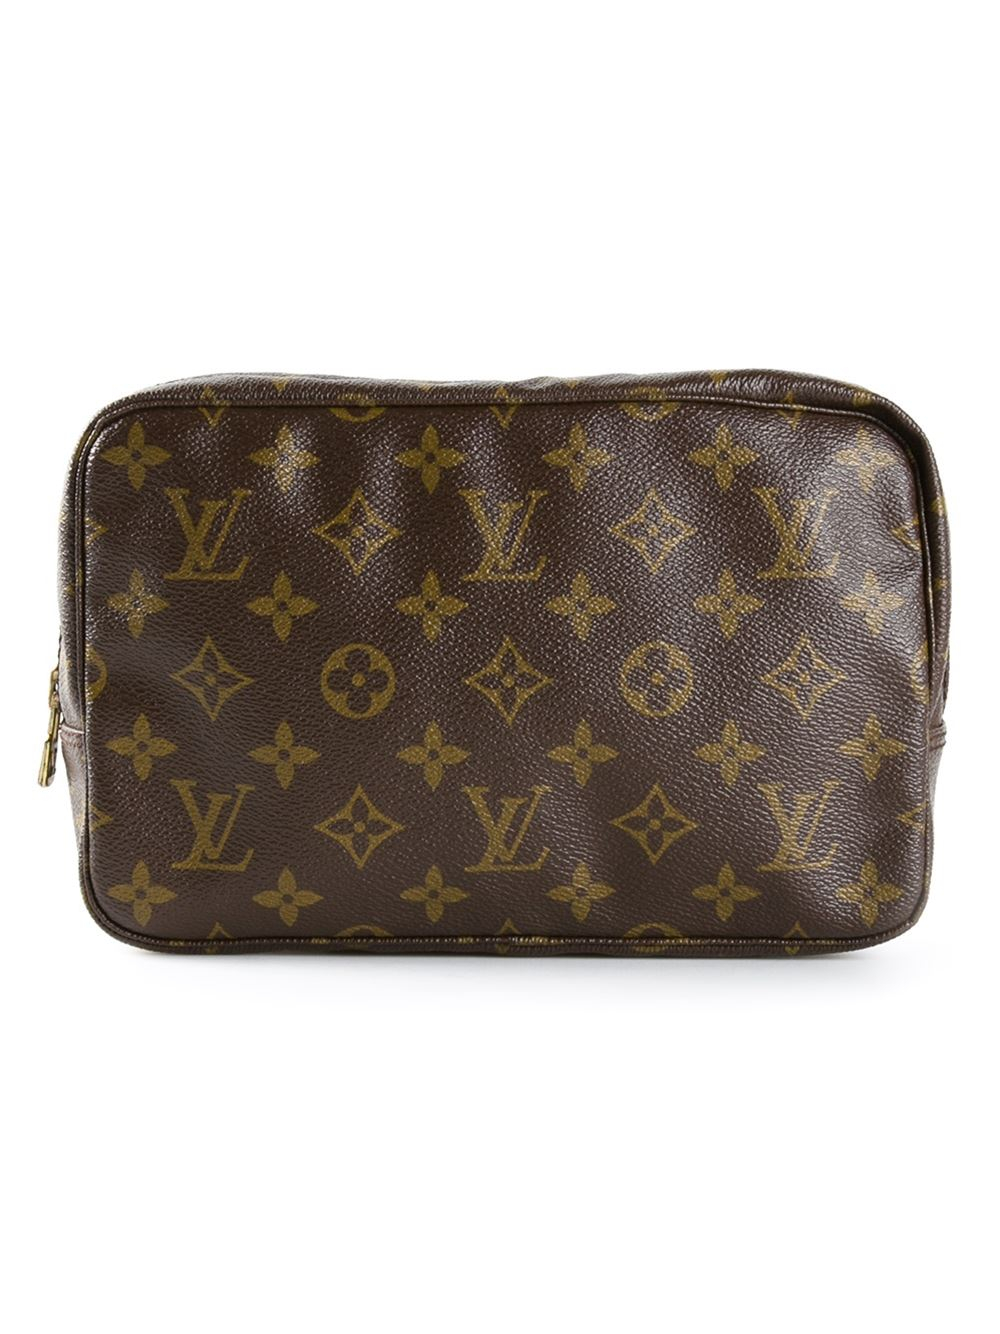 Louis vuitton Monogram Trousse 23 Cosmetic Bag in Brown : Lyst